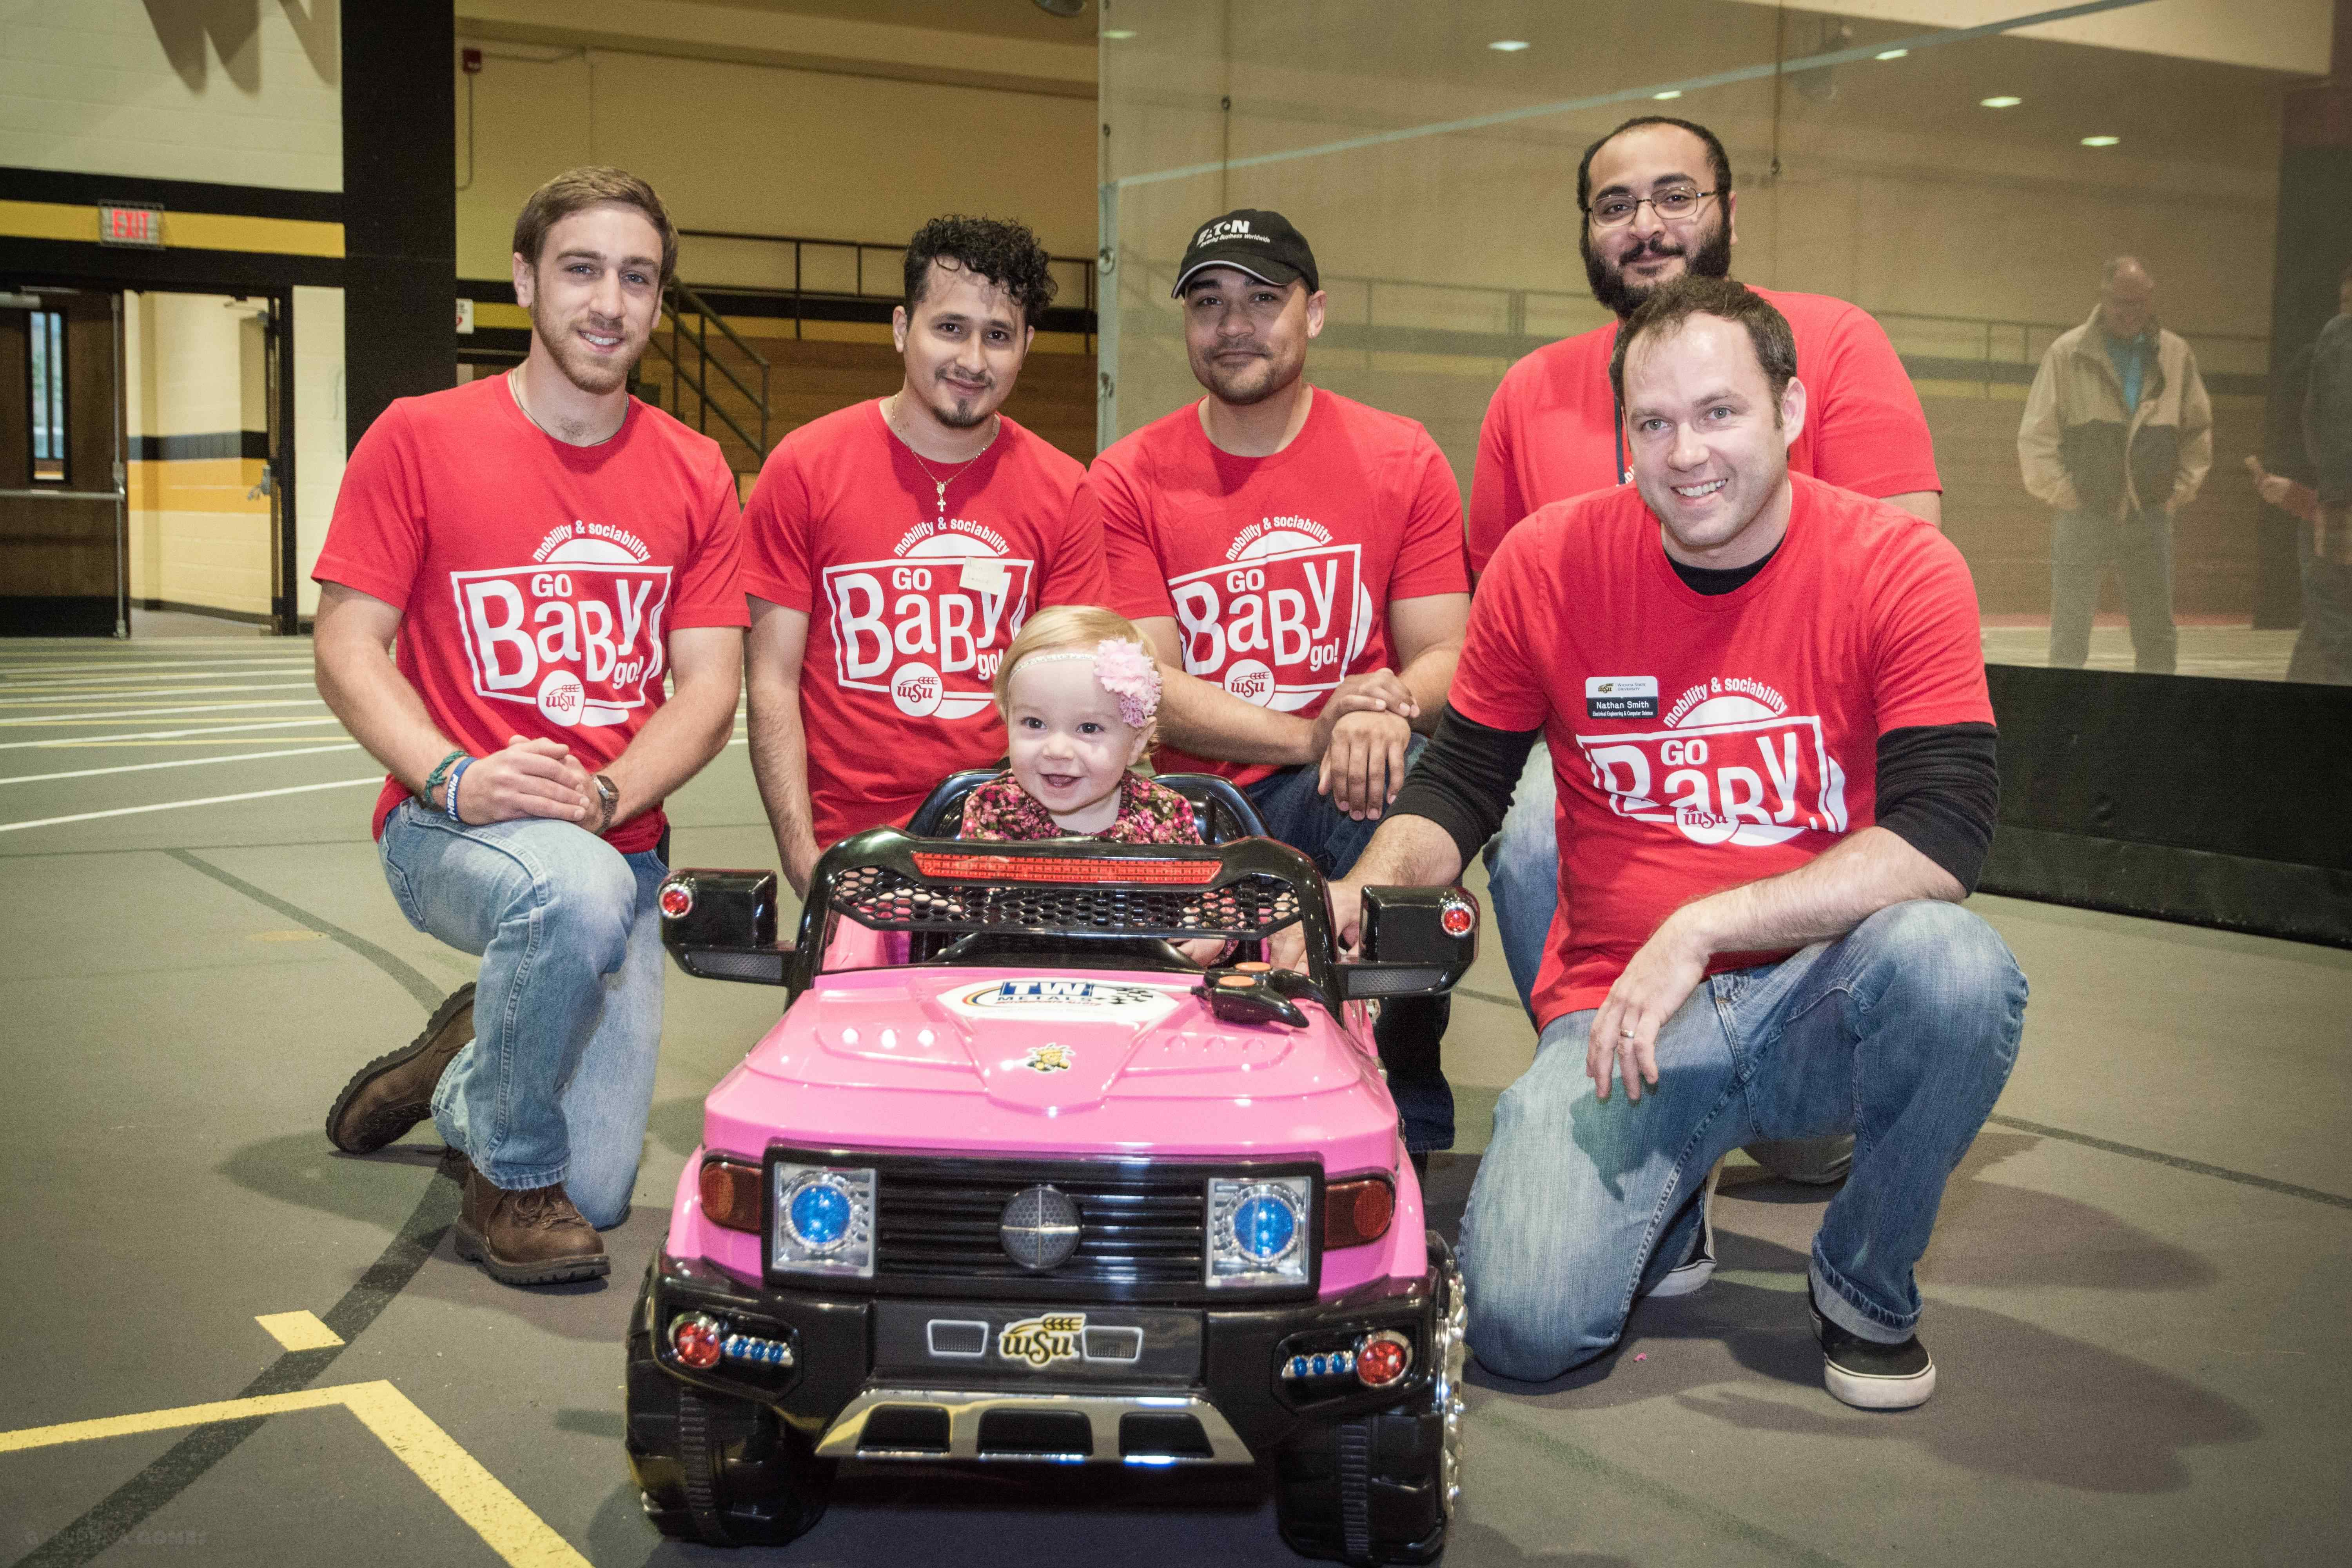 Engineering students pose in front of electric car for Go Baby Go.